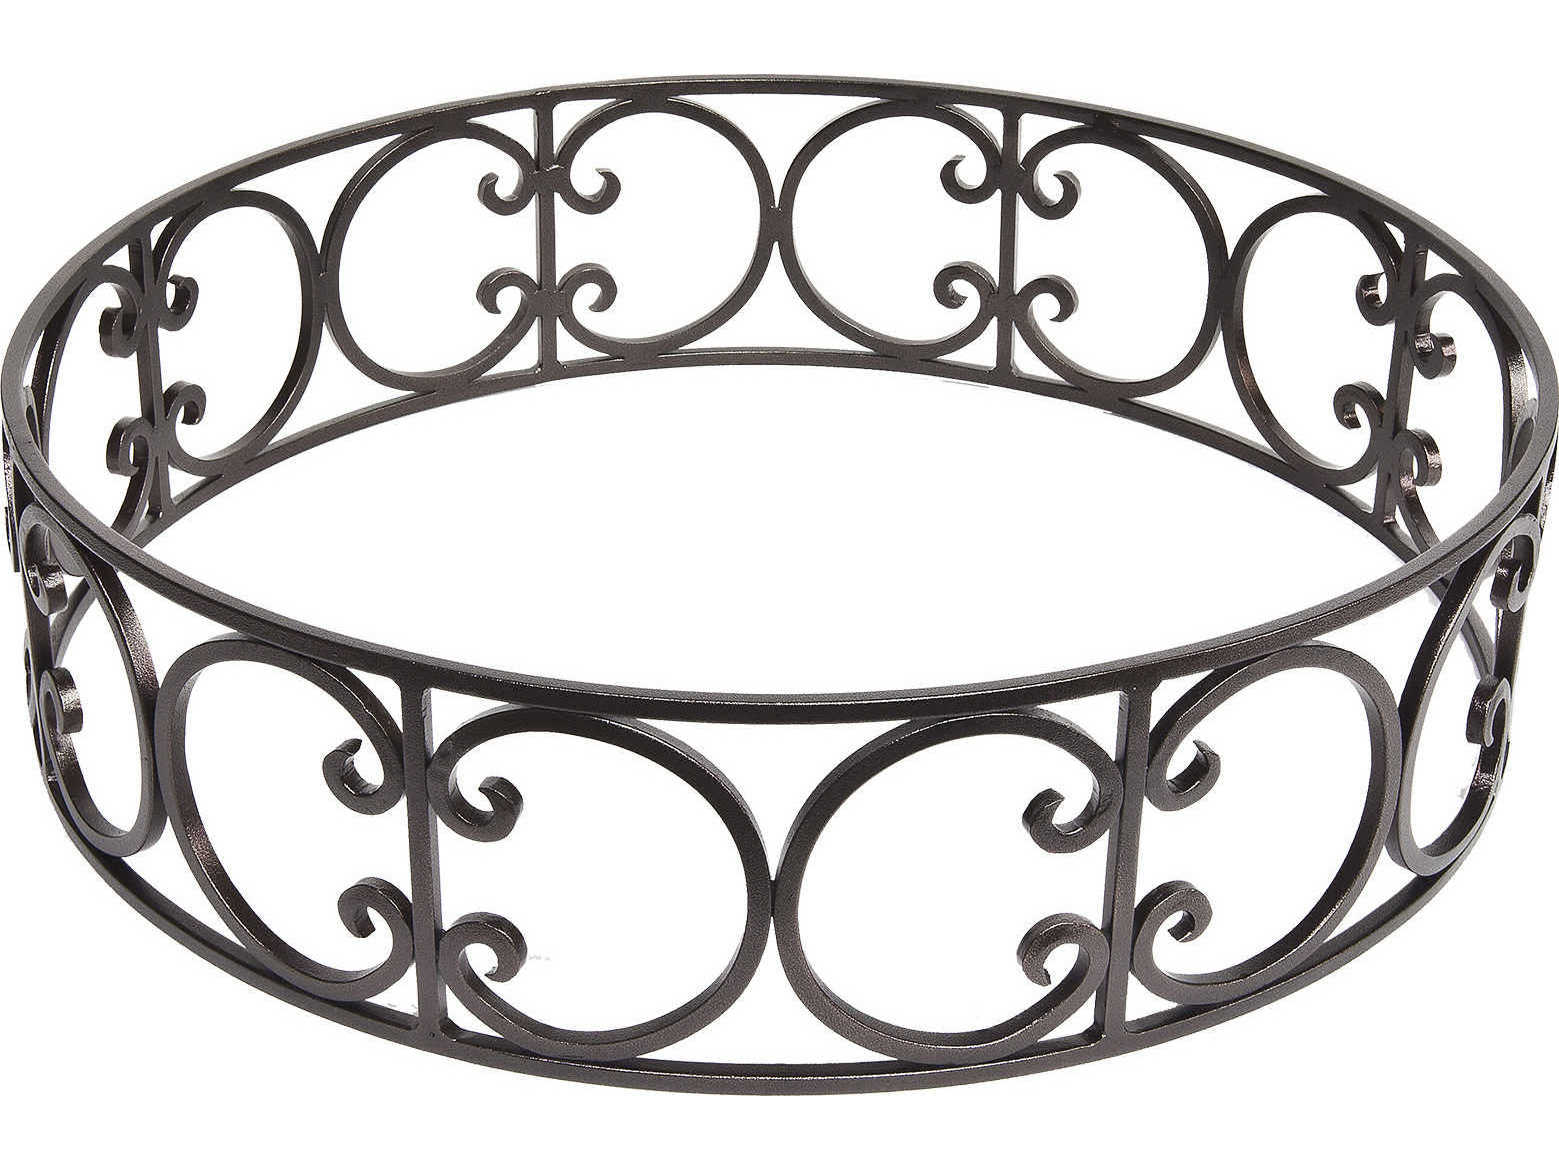 Ow Lee Casual Fireside Wrought Iron Ornate Large Round